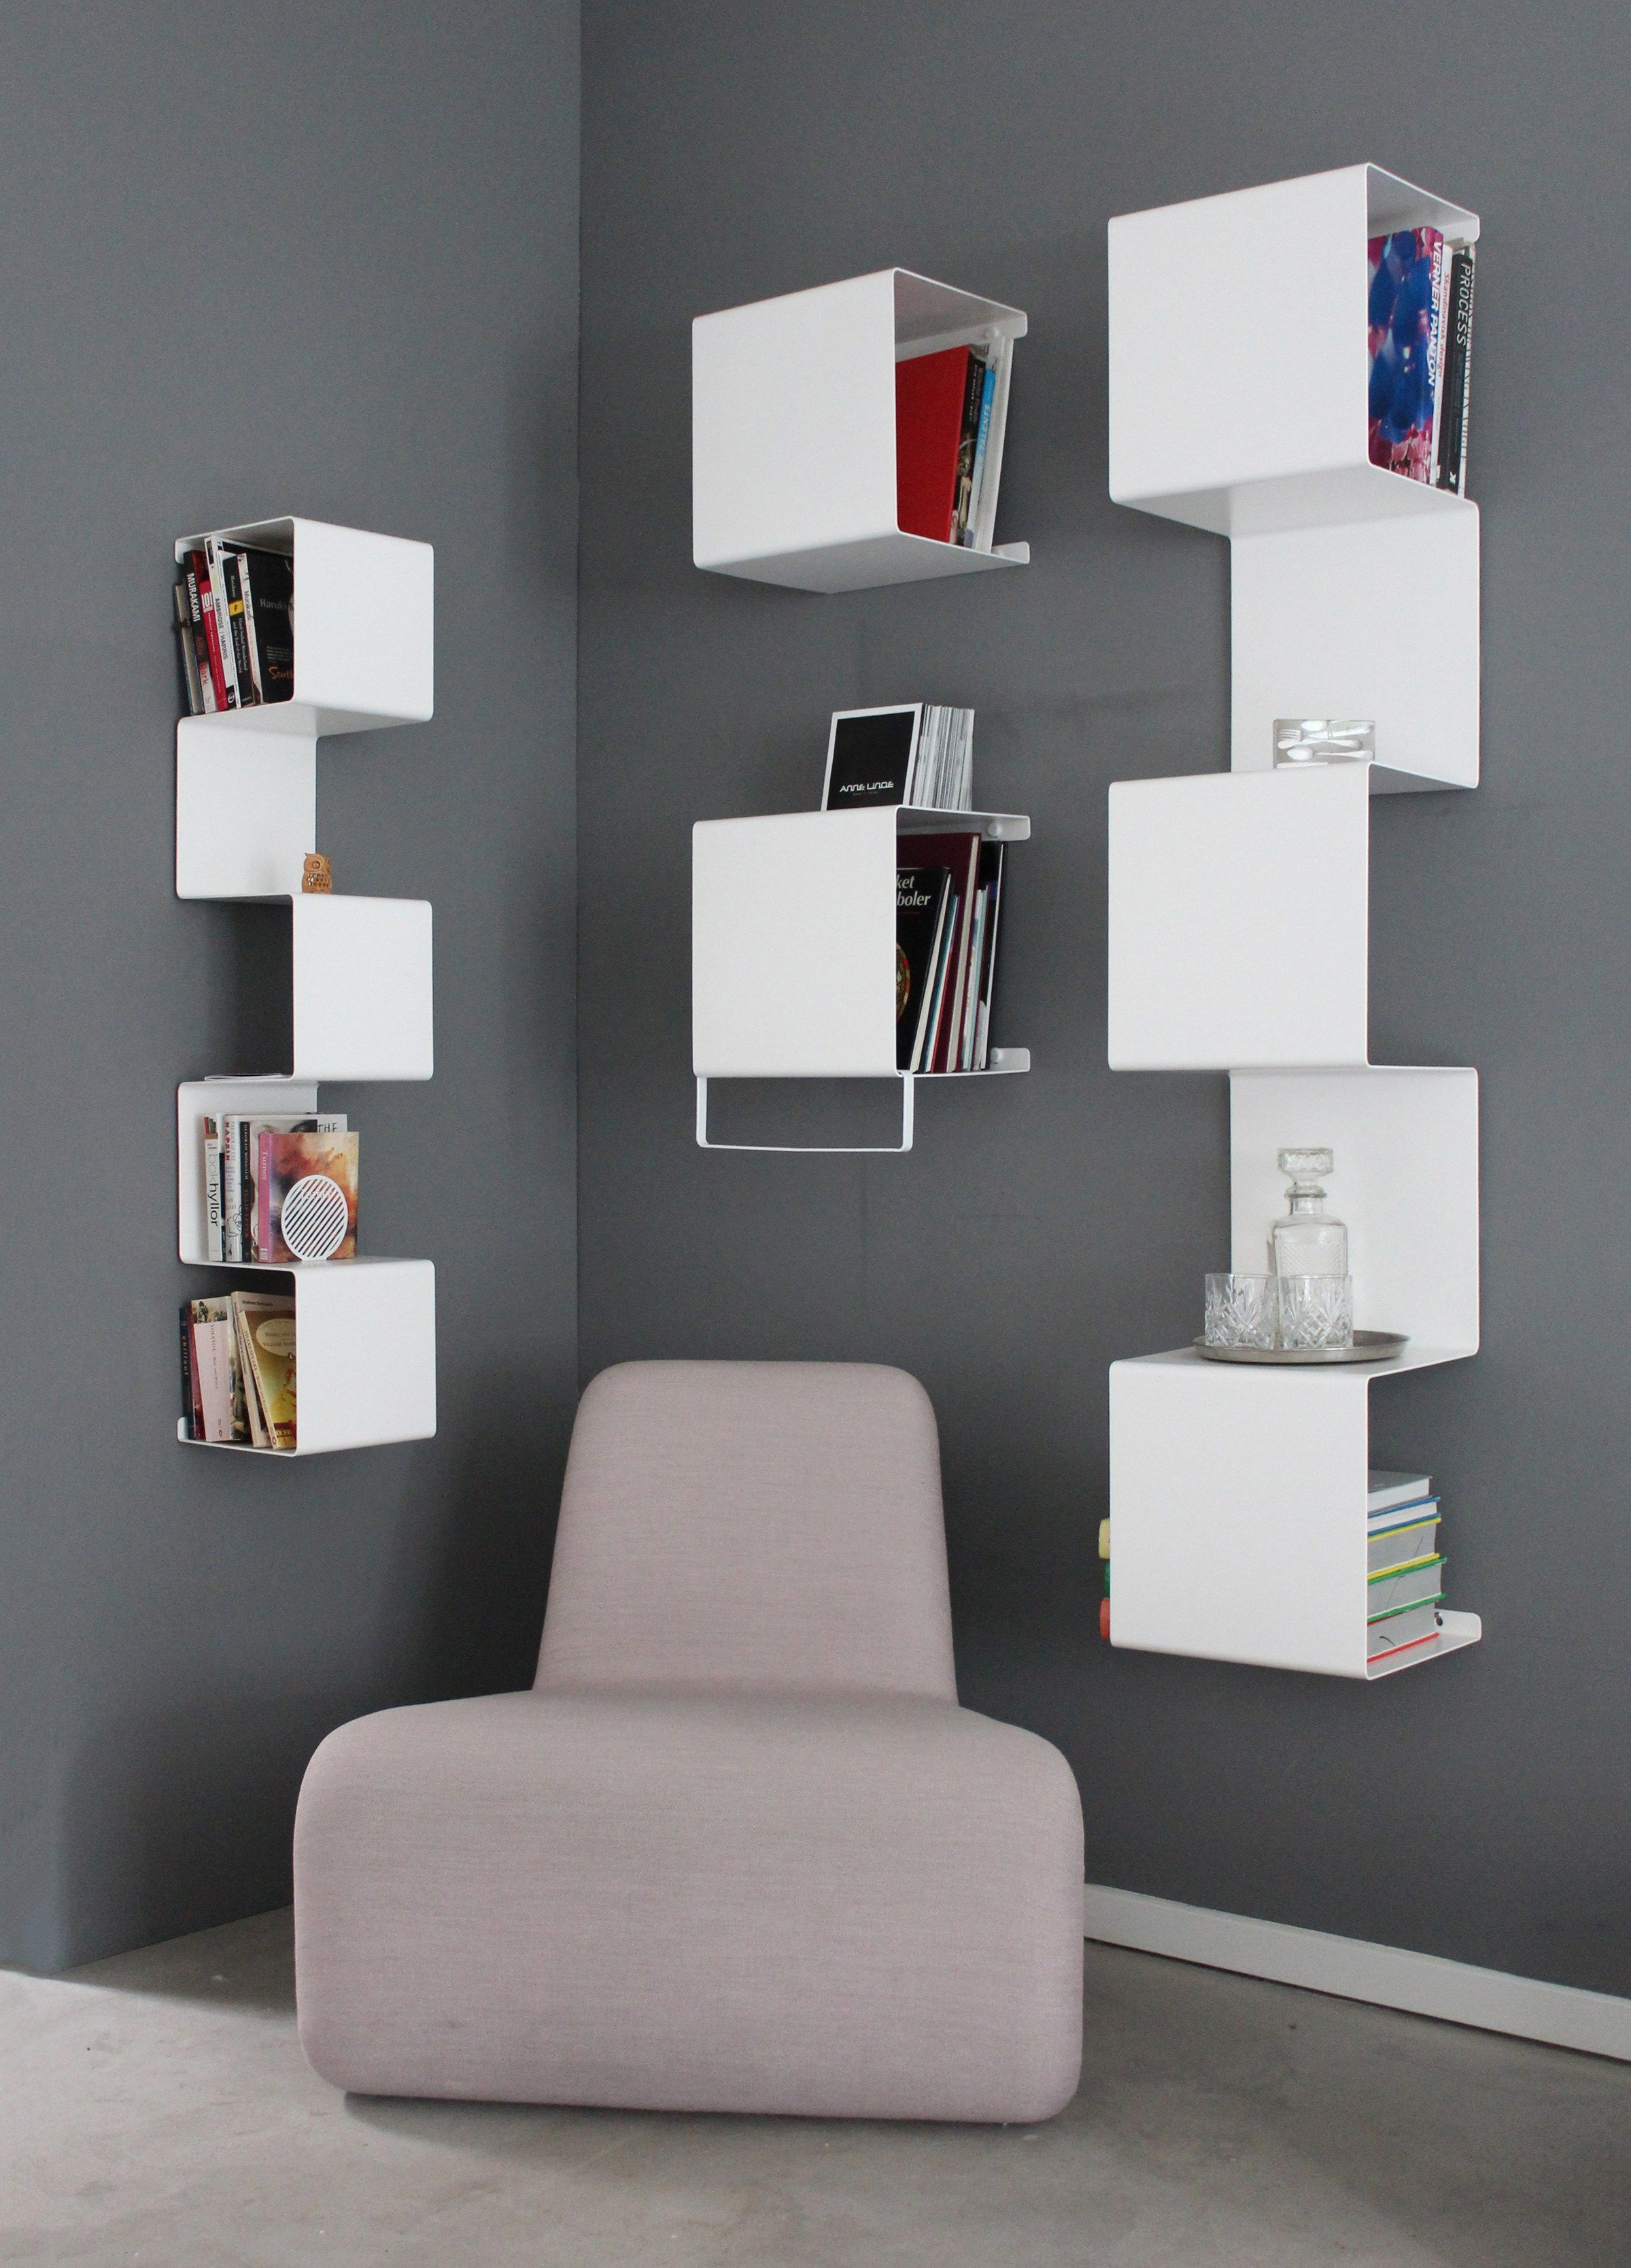 Wall Mounted Powder Coated Aluminium Bookcase Showcase 4 By Anne Linde Design Anne Linde Bookshelf Design Bookcase Design Wall Shelves Design